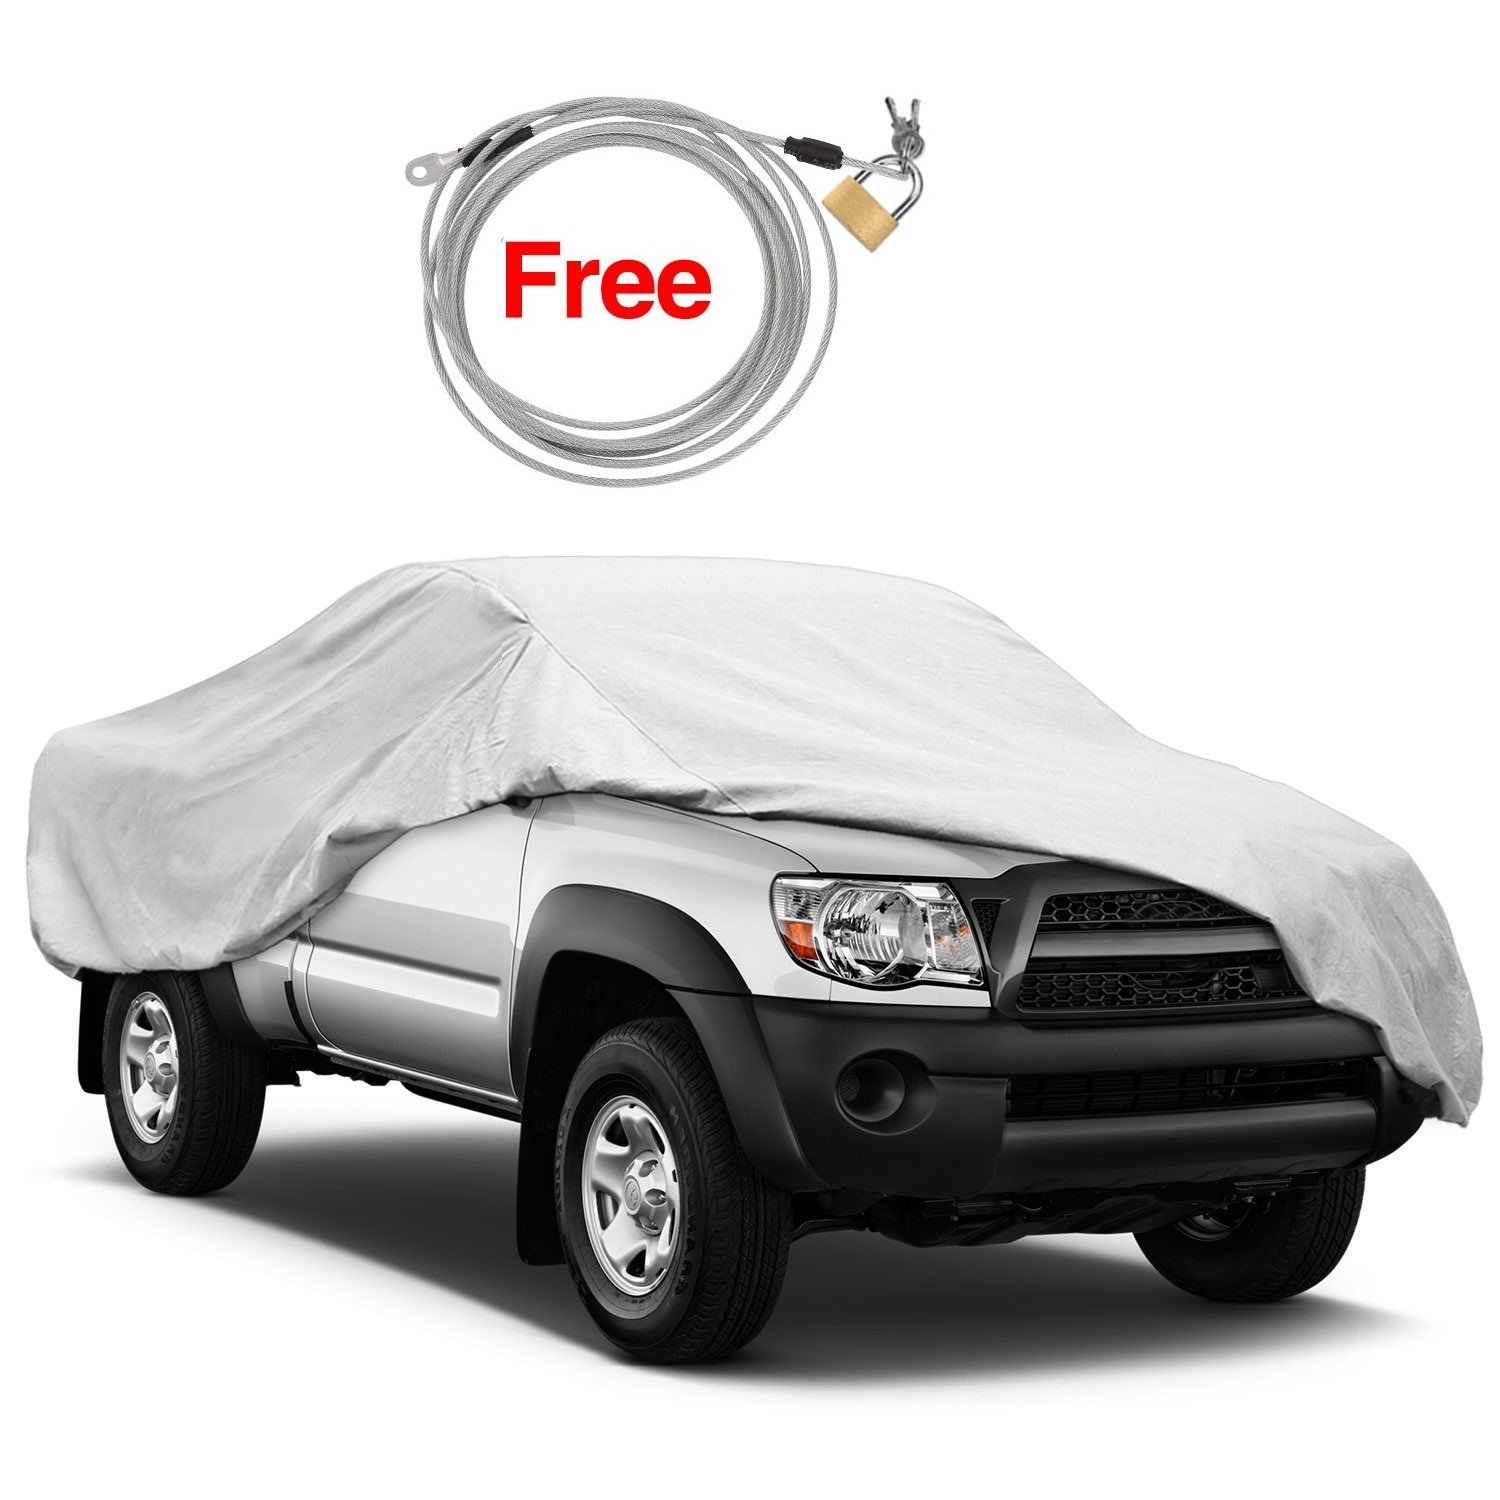 Windproof Dustproof Truck Cover - KAKIT Water Resistant All Weather Sun Protection Car Cover for Truck - Free Windproof Ribbon & Anti-theft Lock - Fits up to 242'